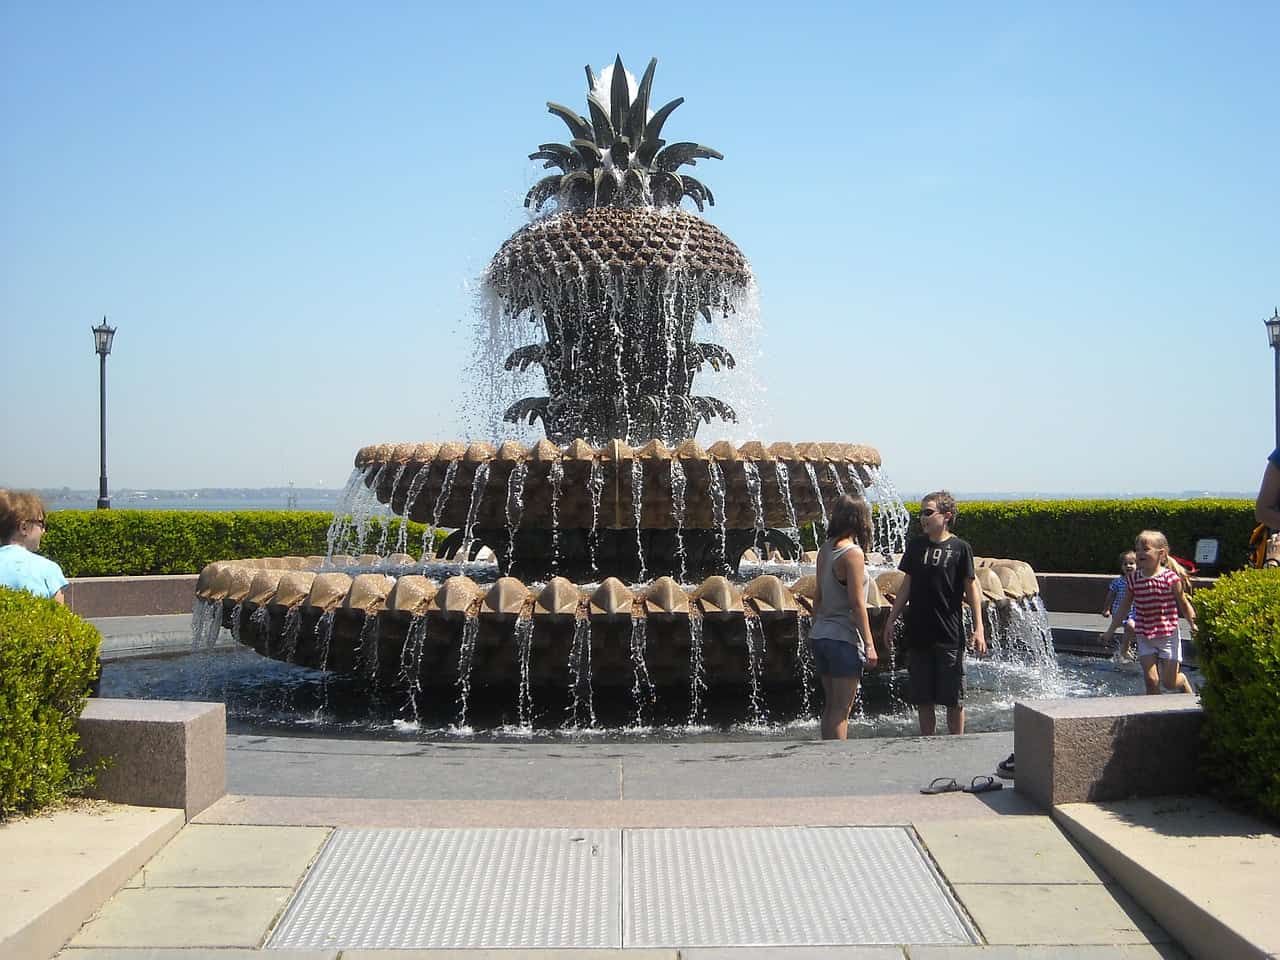 pineapple symbolism, pineapple fountain